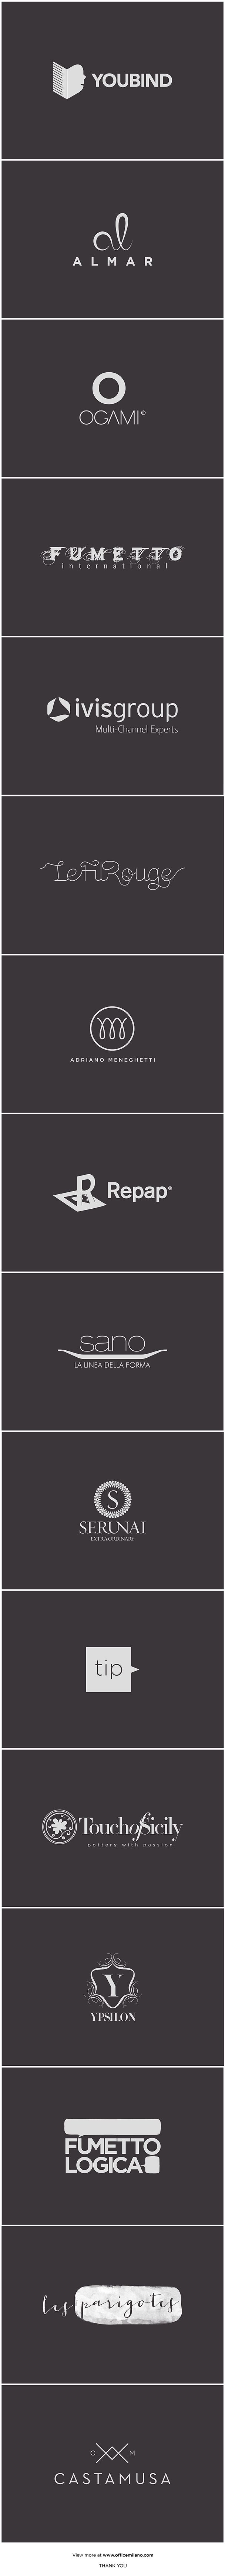 Logo Overview by Officemilano